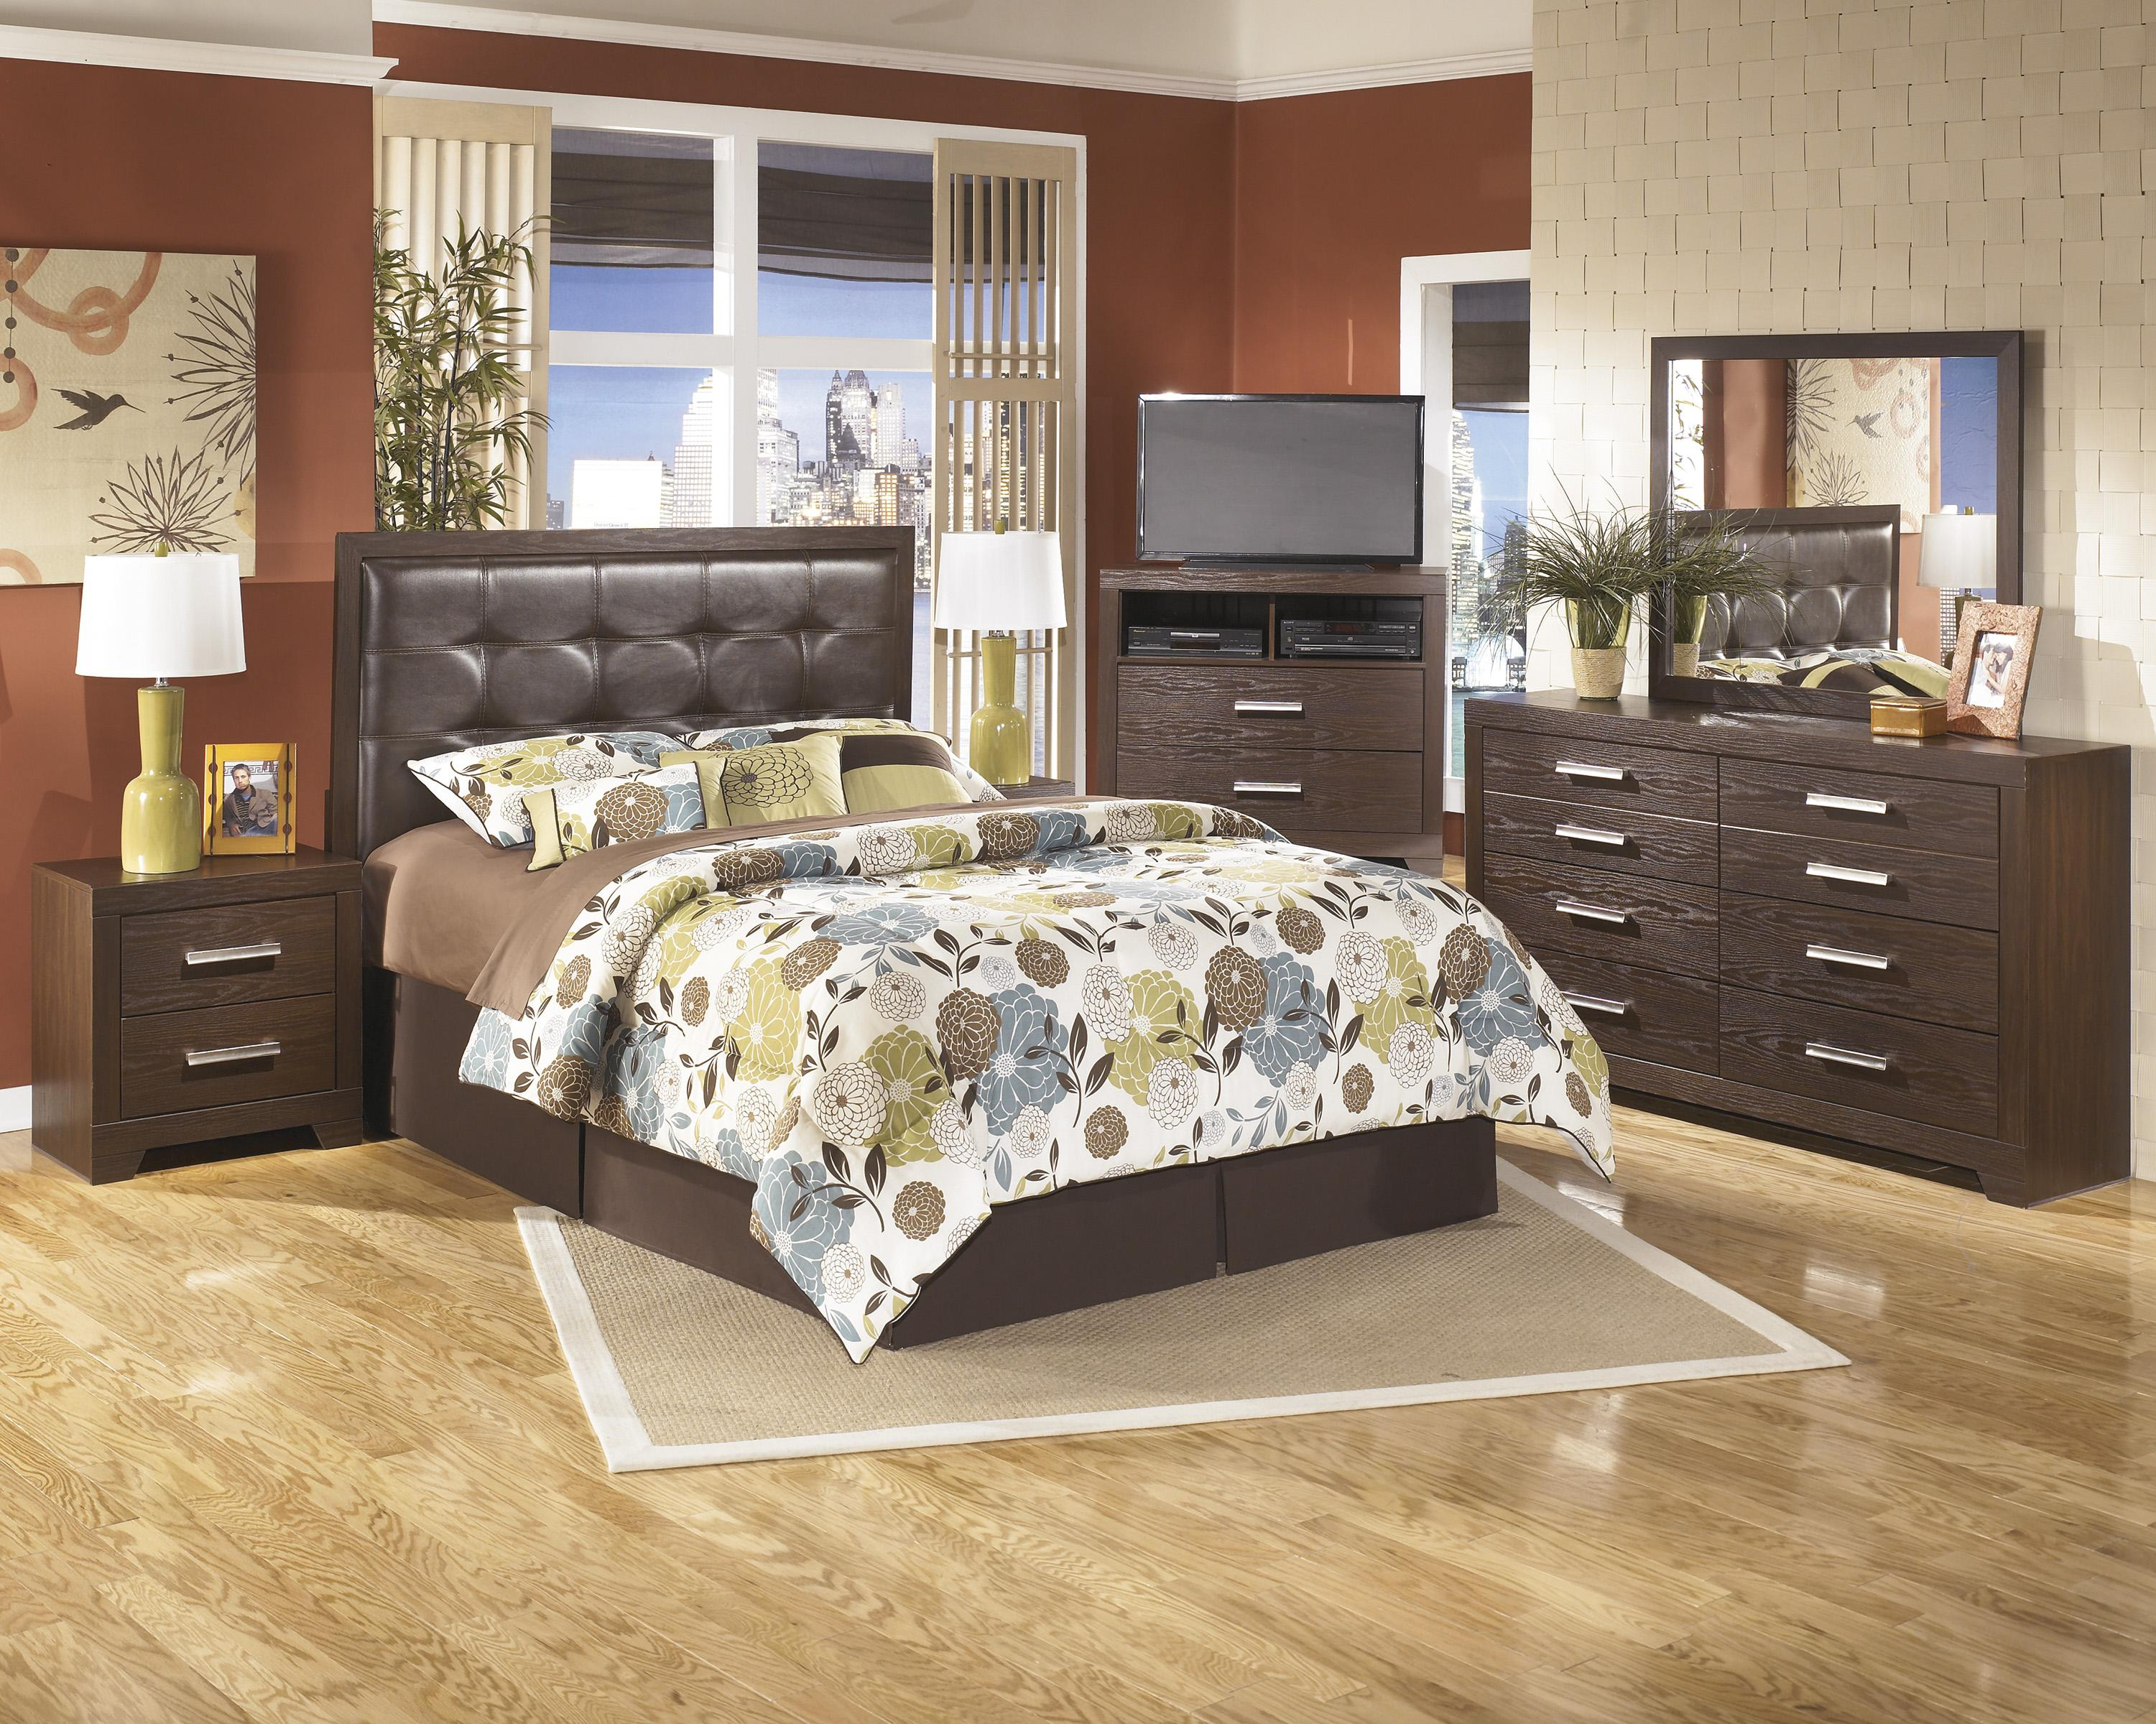 Signature Design by Ashley Aleydis Queen Bedroom Group - Item Number: B165 Q Bedroom Group 1